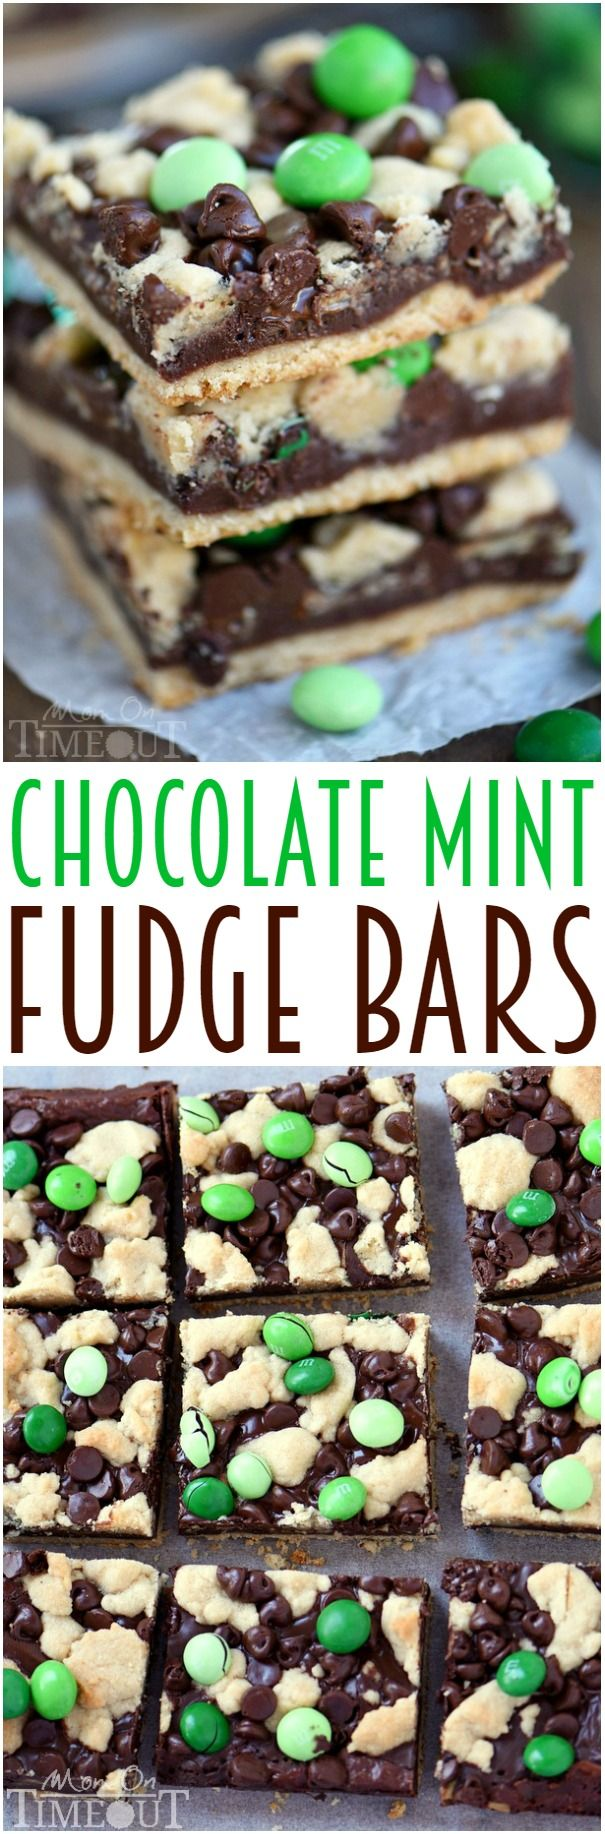 Indulge in these outrageously decadent Chocolate Mint Fudge Crumb Bars. Great chocolate and mint recipe.